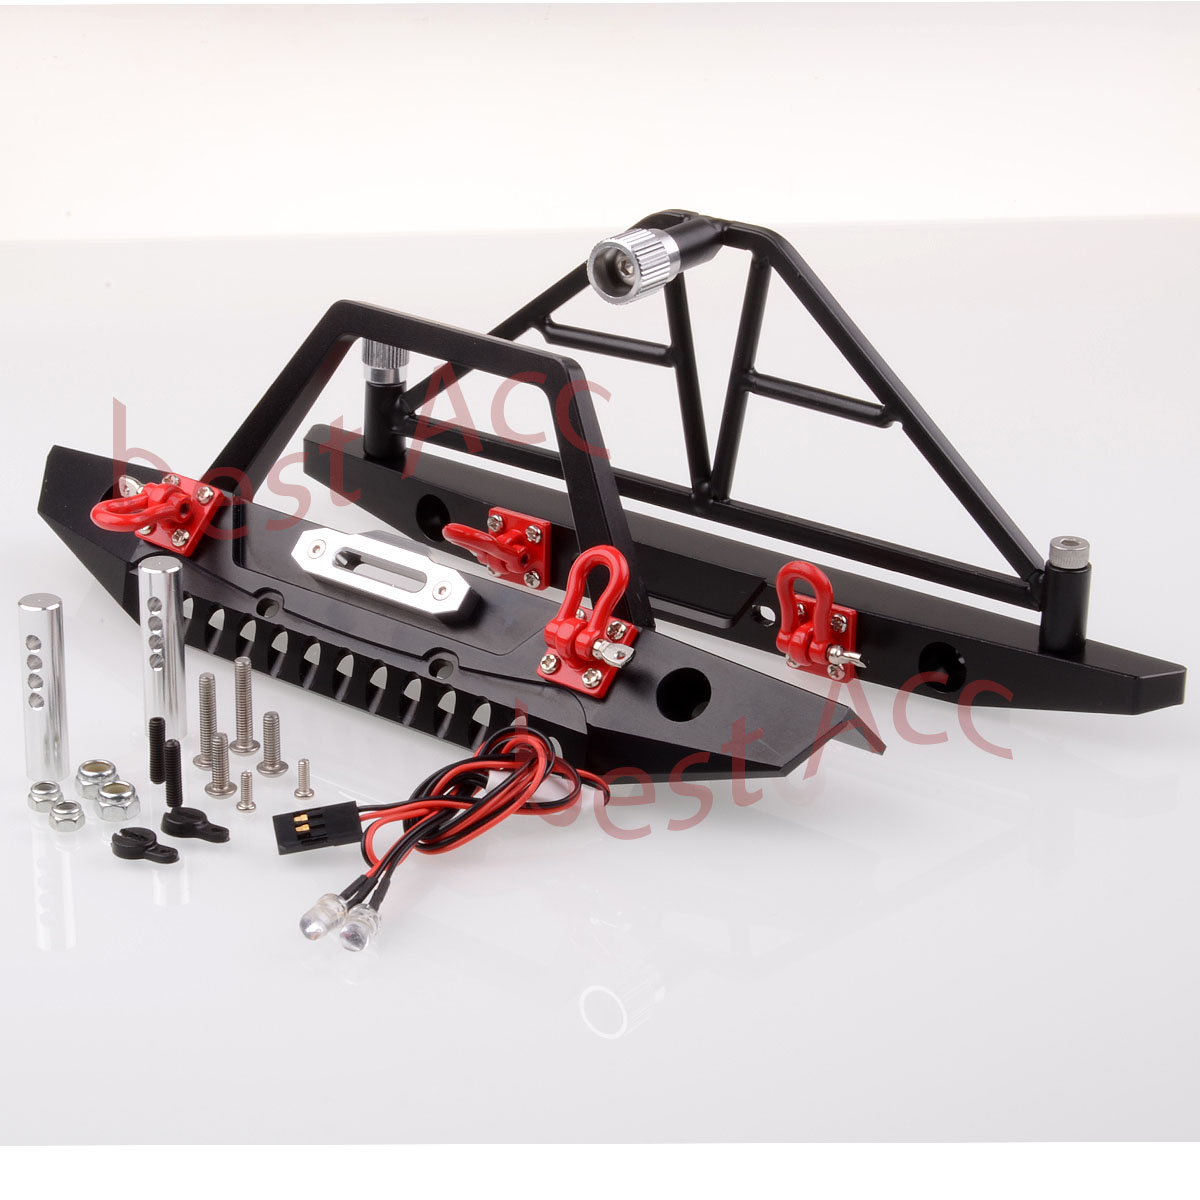 Details about Front / Rear Bumper Spare Tire Carrier LED RC 1:10 AXIAL SCX10 Crawler Metal HSP